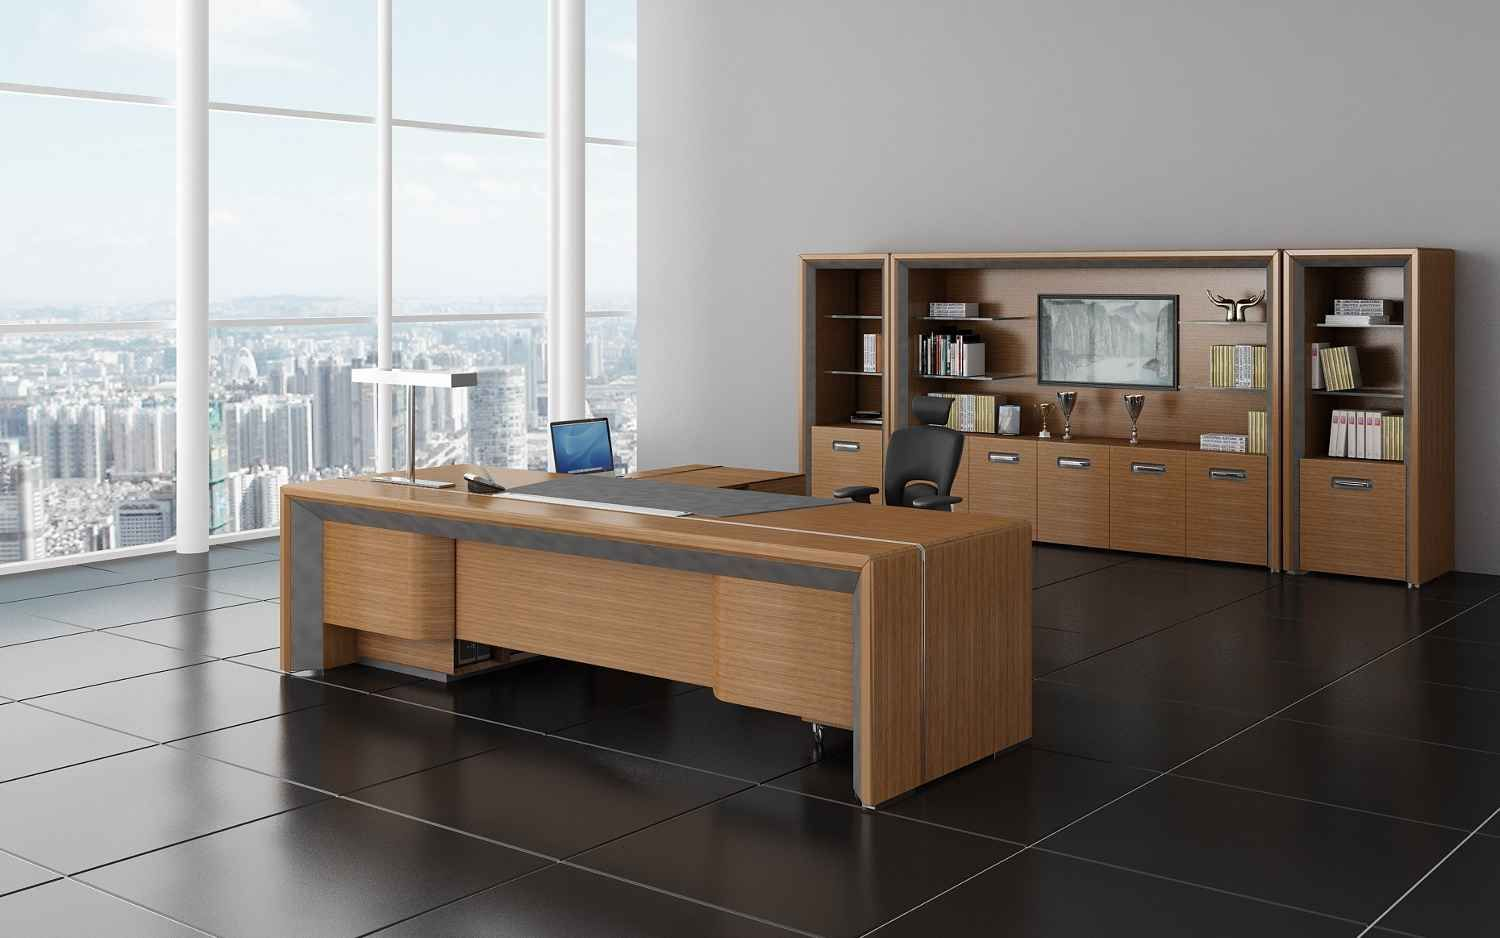 boss tableoffice deskexecutive deskmanager. Boss Tableoffice Deskexecutive Deskmanager. Modern Wood Cabinetry Furniture Feat Ergonomic Office Chair And Black Floor Deskmanager I